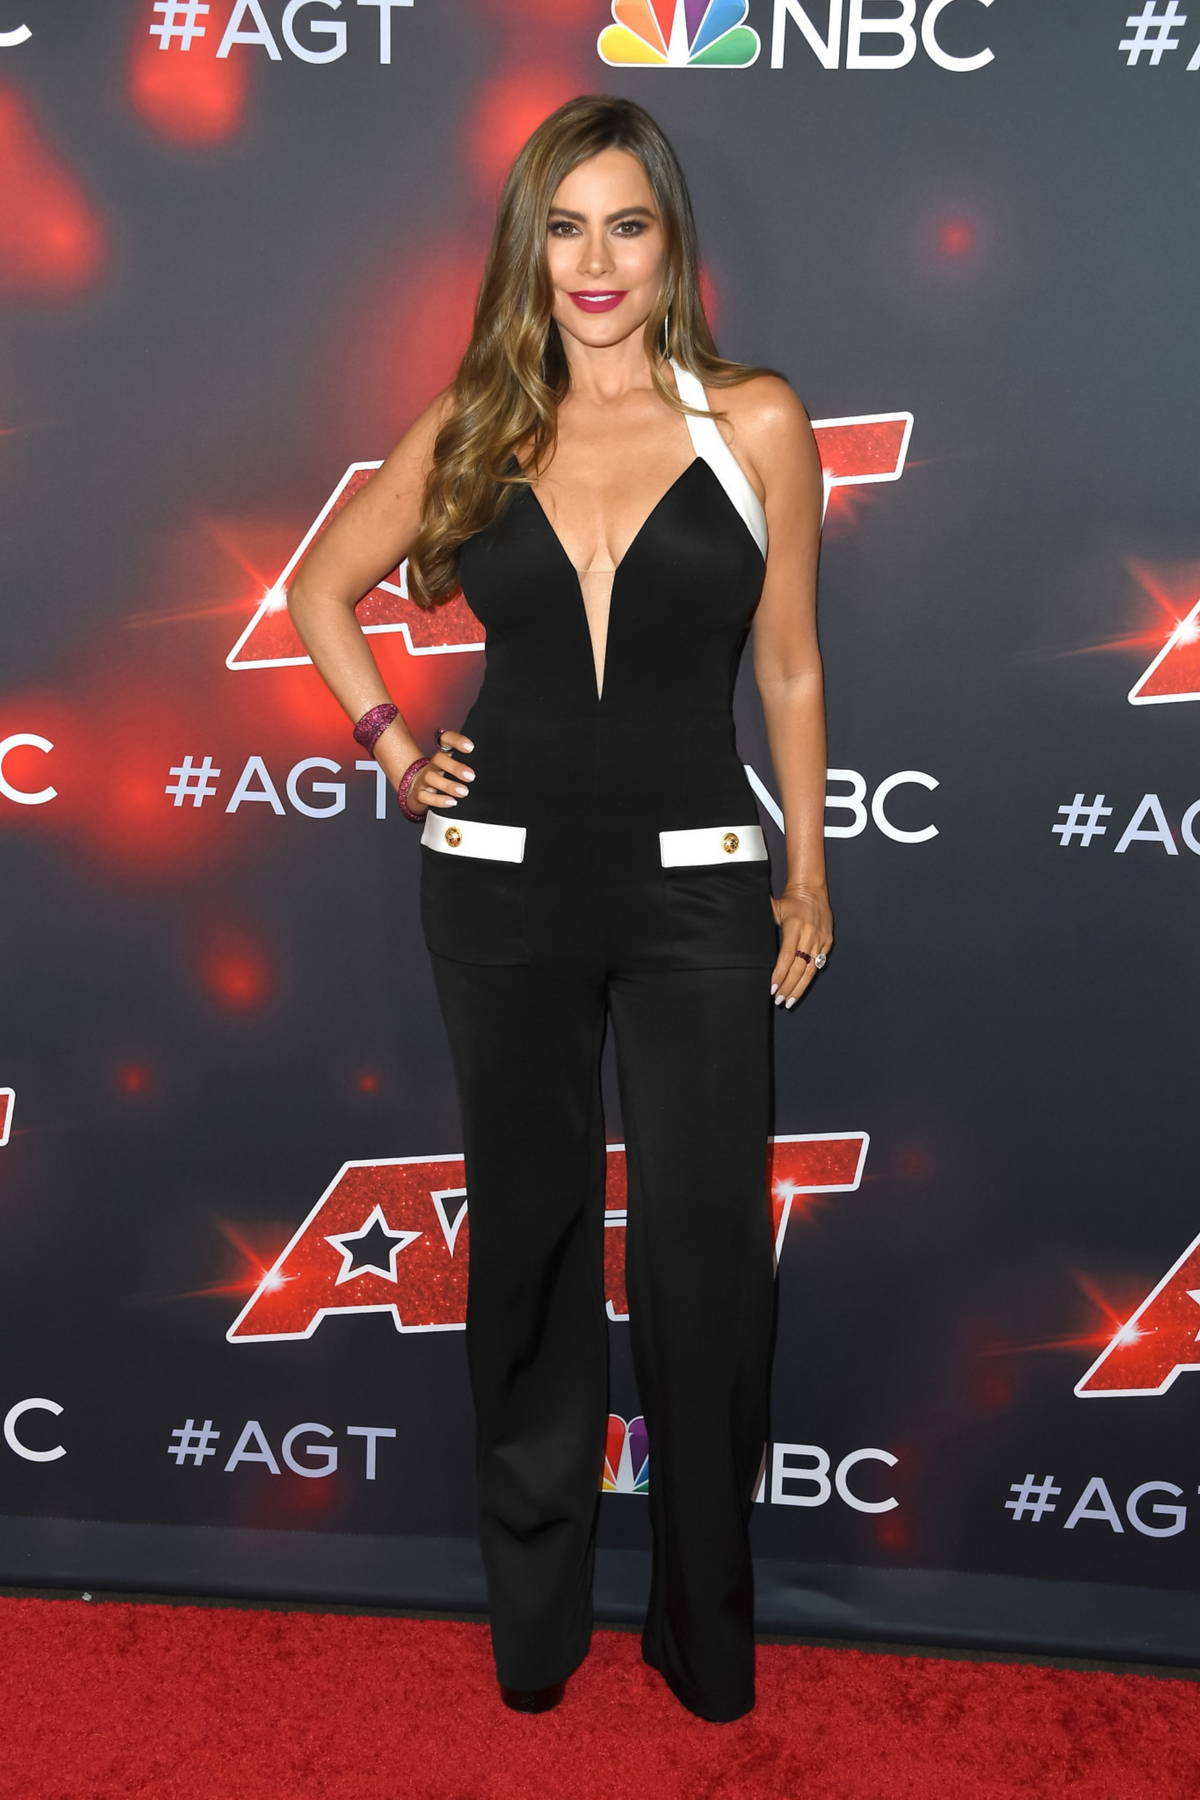 Sofía Vergara arrives at 'America's Got Talent', Season 16 live show at Dolby Theatre in Hollywood, California